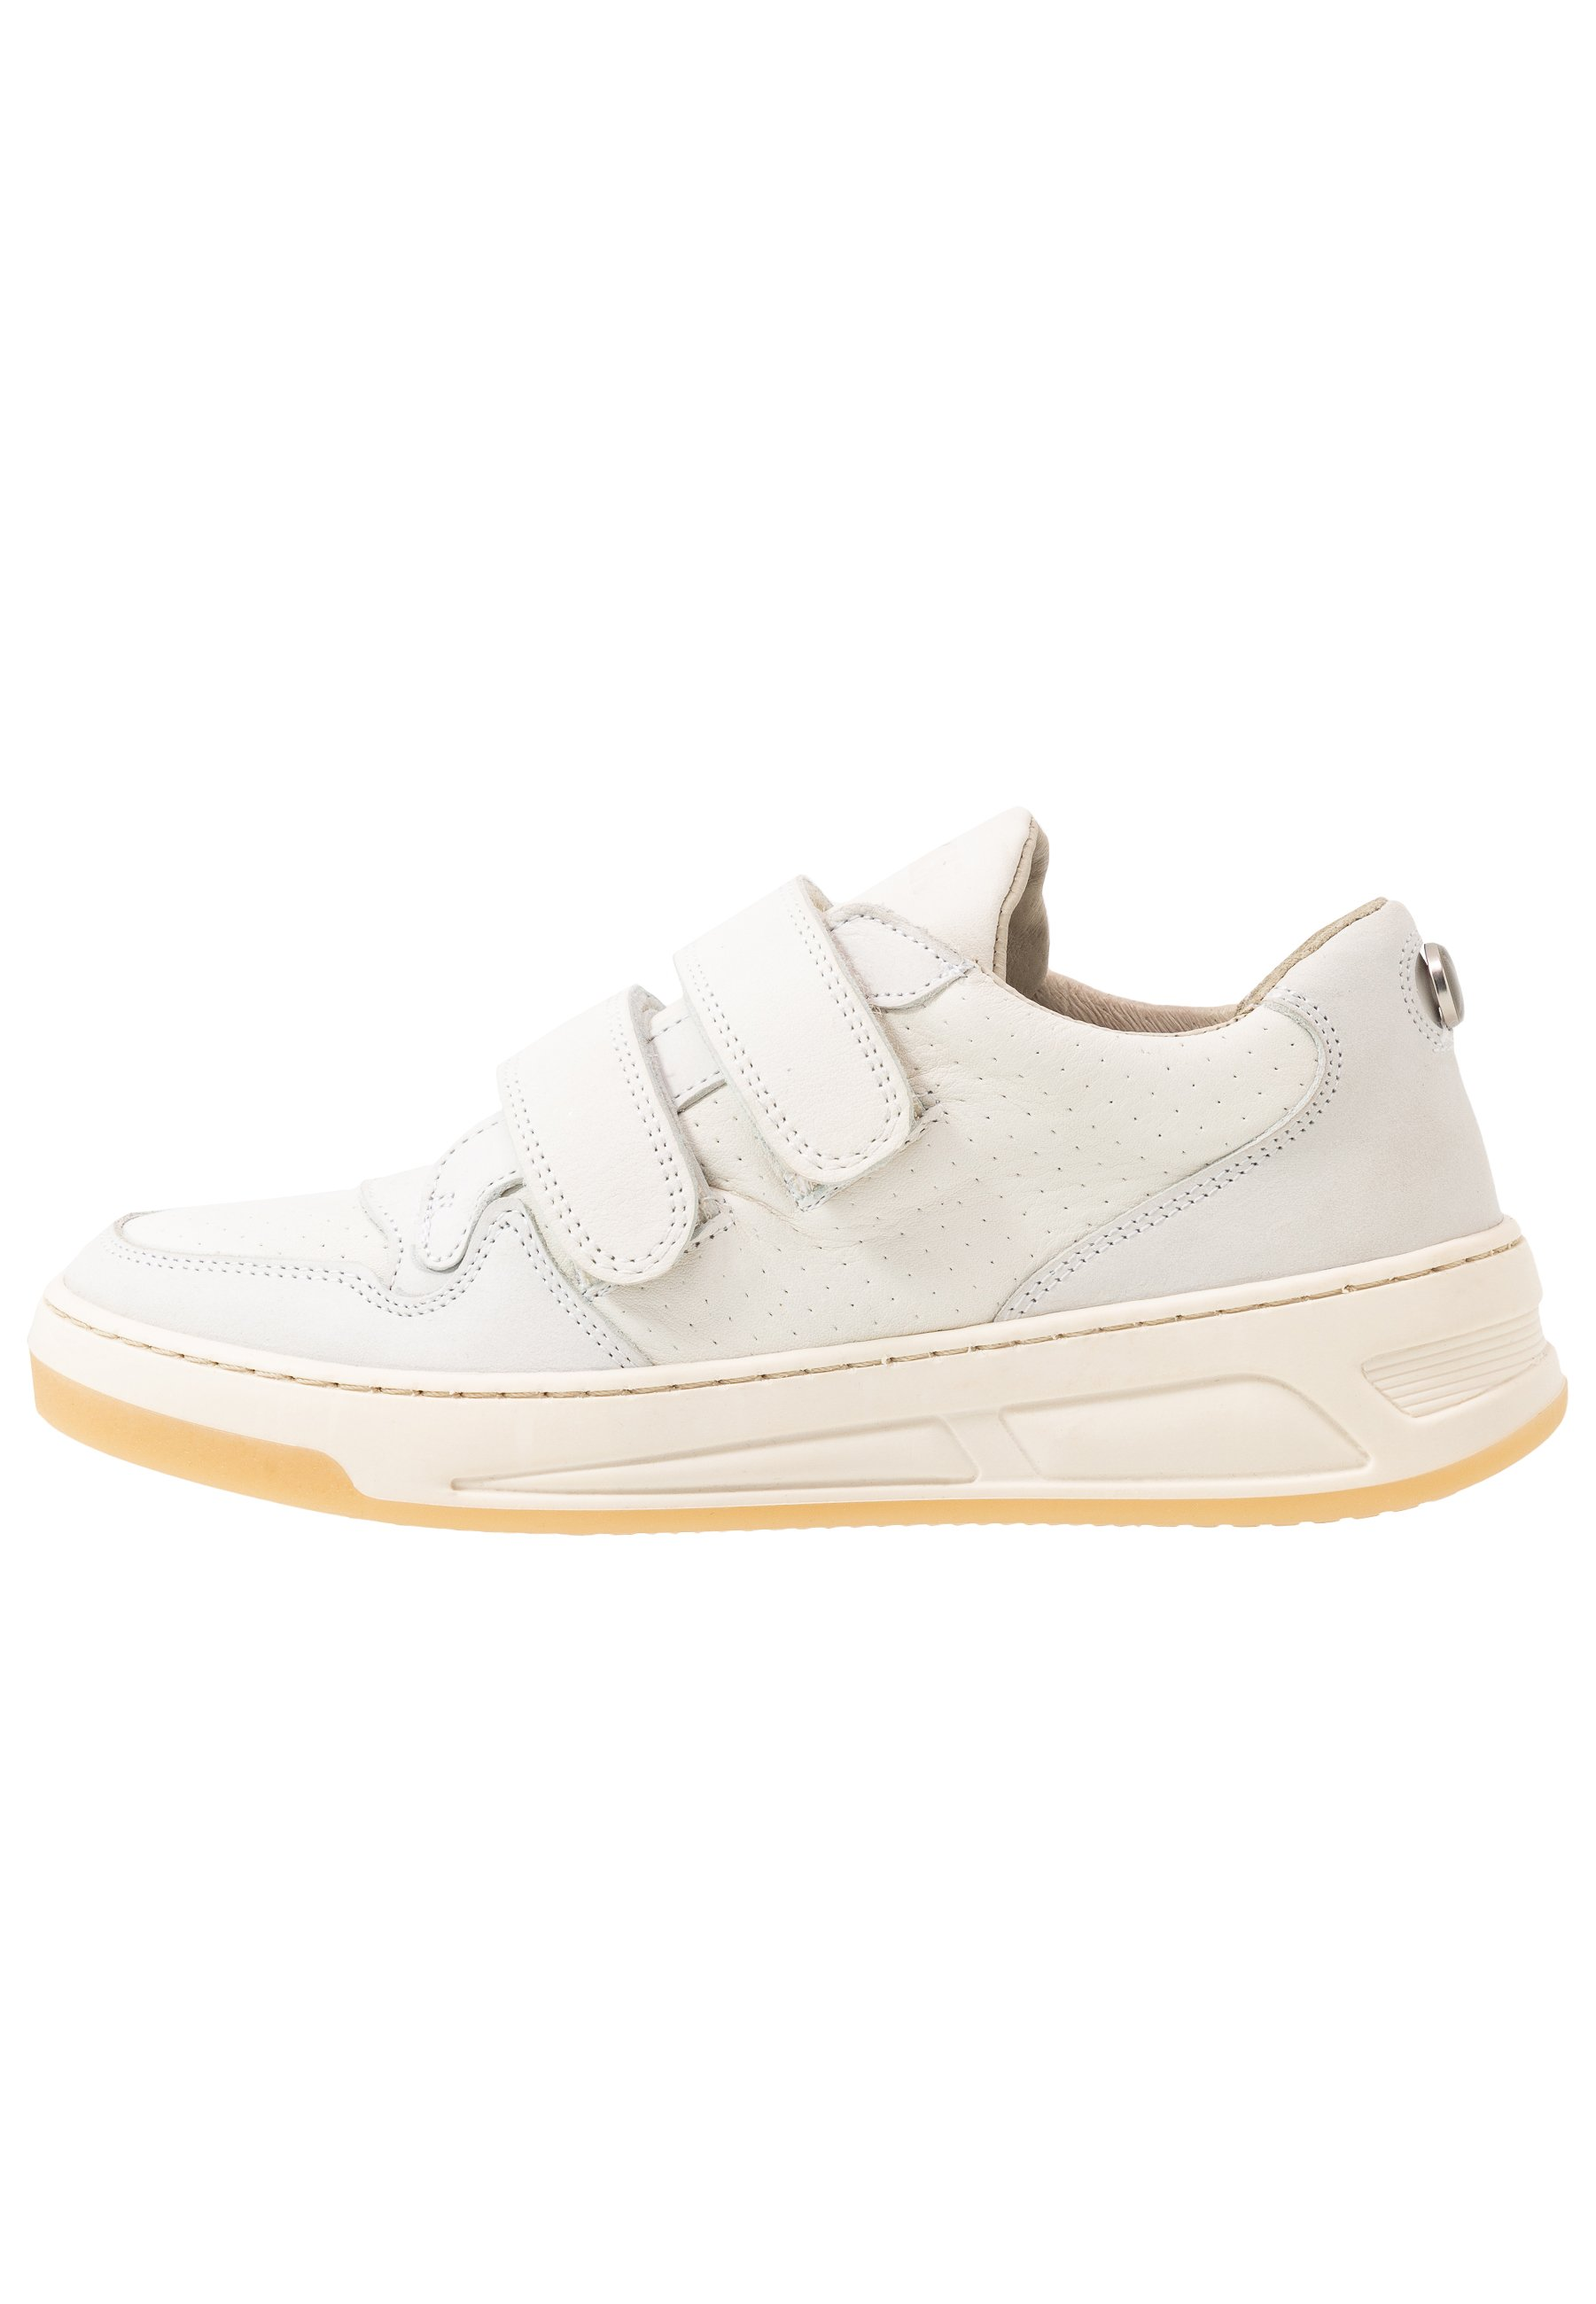 Bronx Old Cosmo - Sneakers Basse Offwhite a13Qe